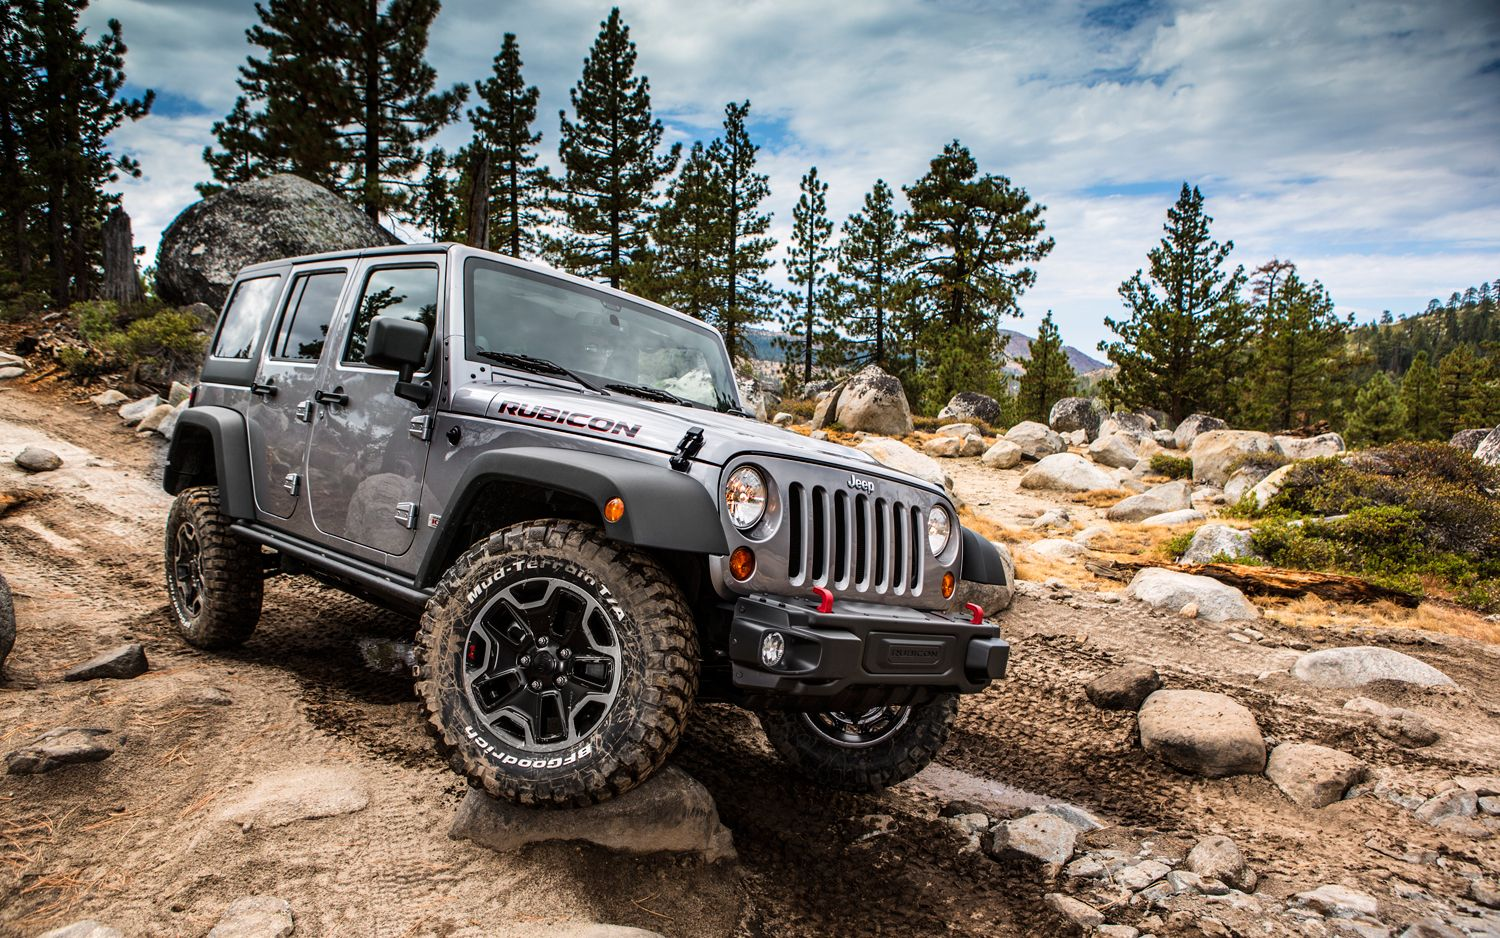 2013 Jeep Wrangler Rubicon 10th Anniversary Edition Stomps Into